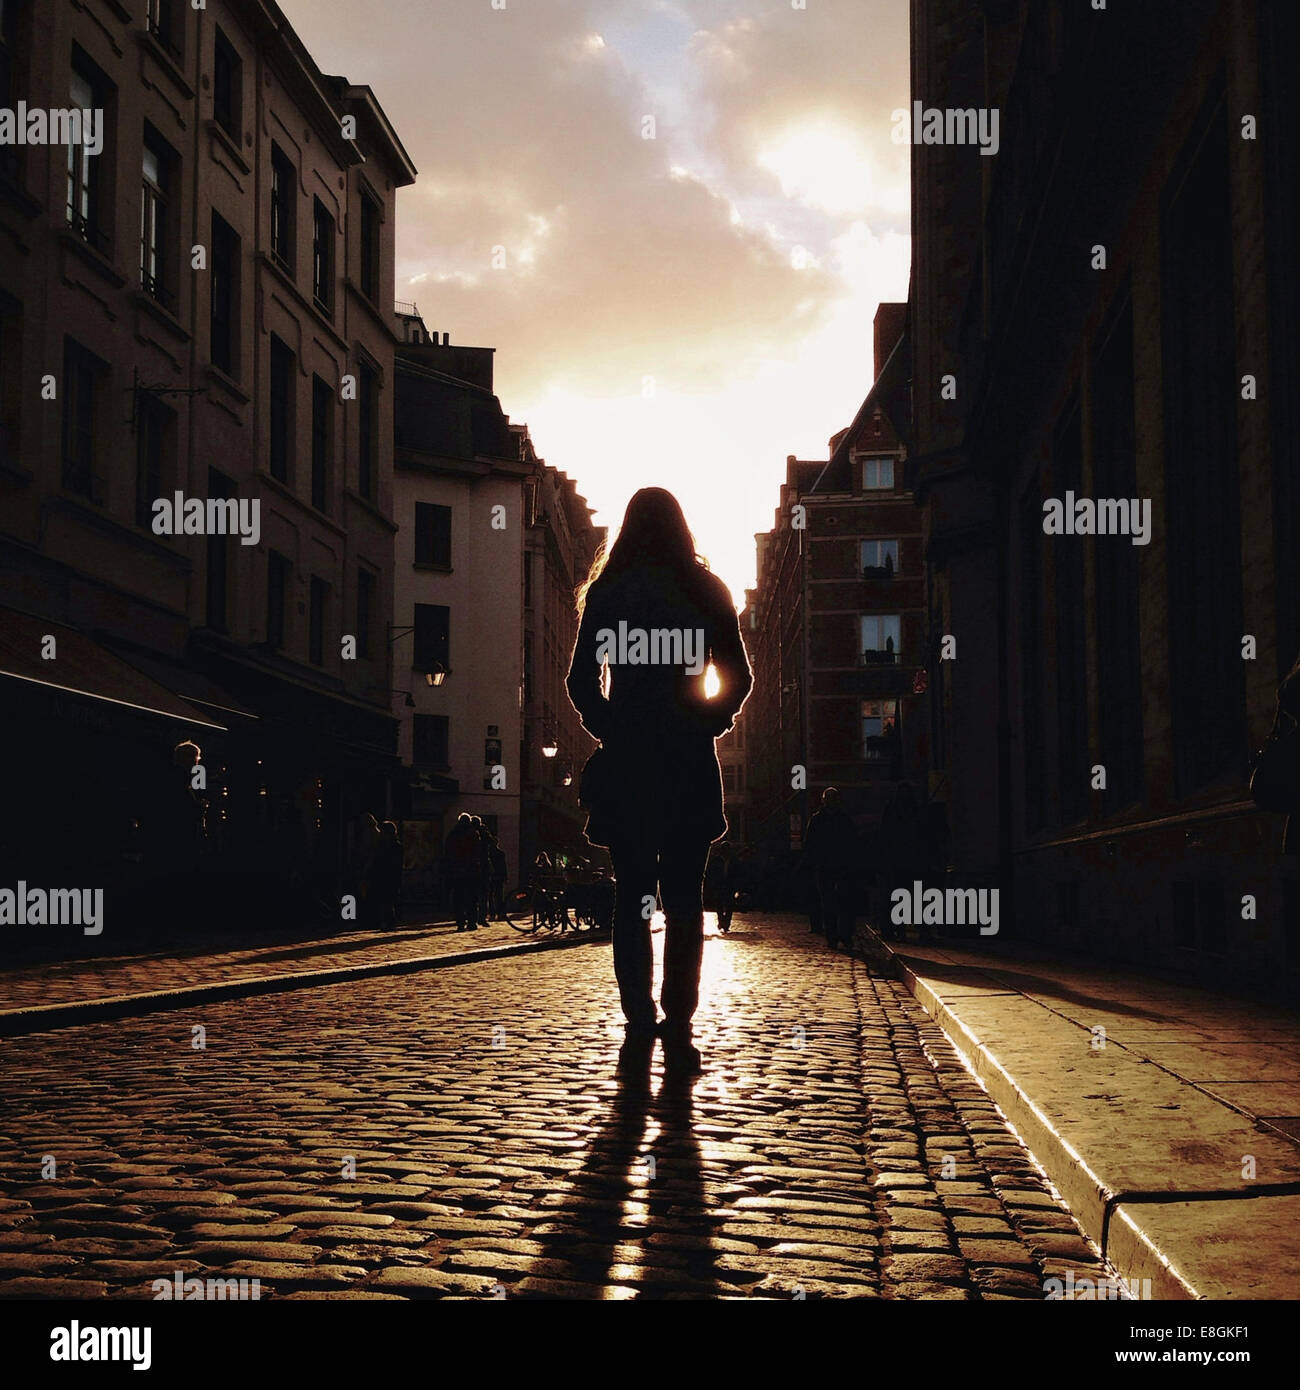 Rear view of woman standing in street Stock Photo